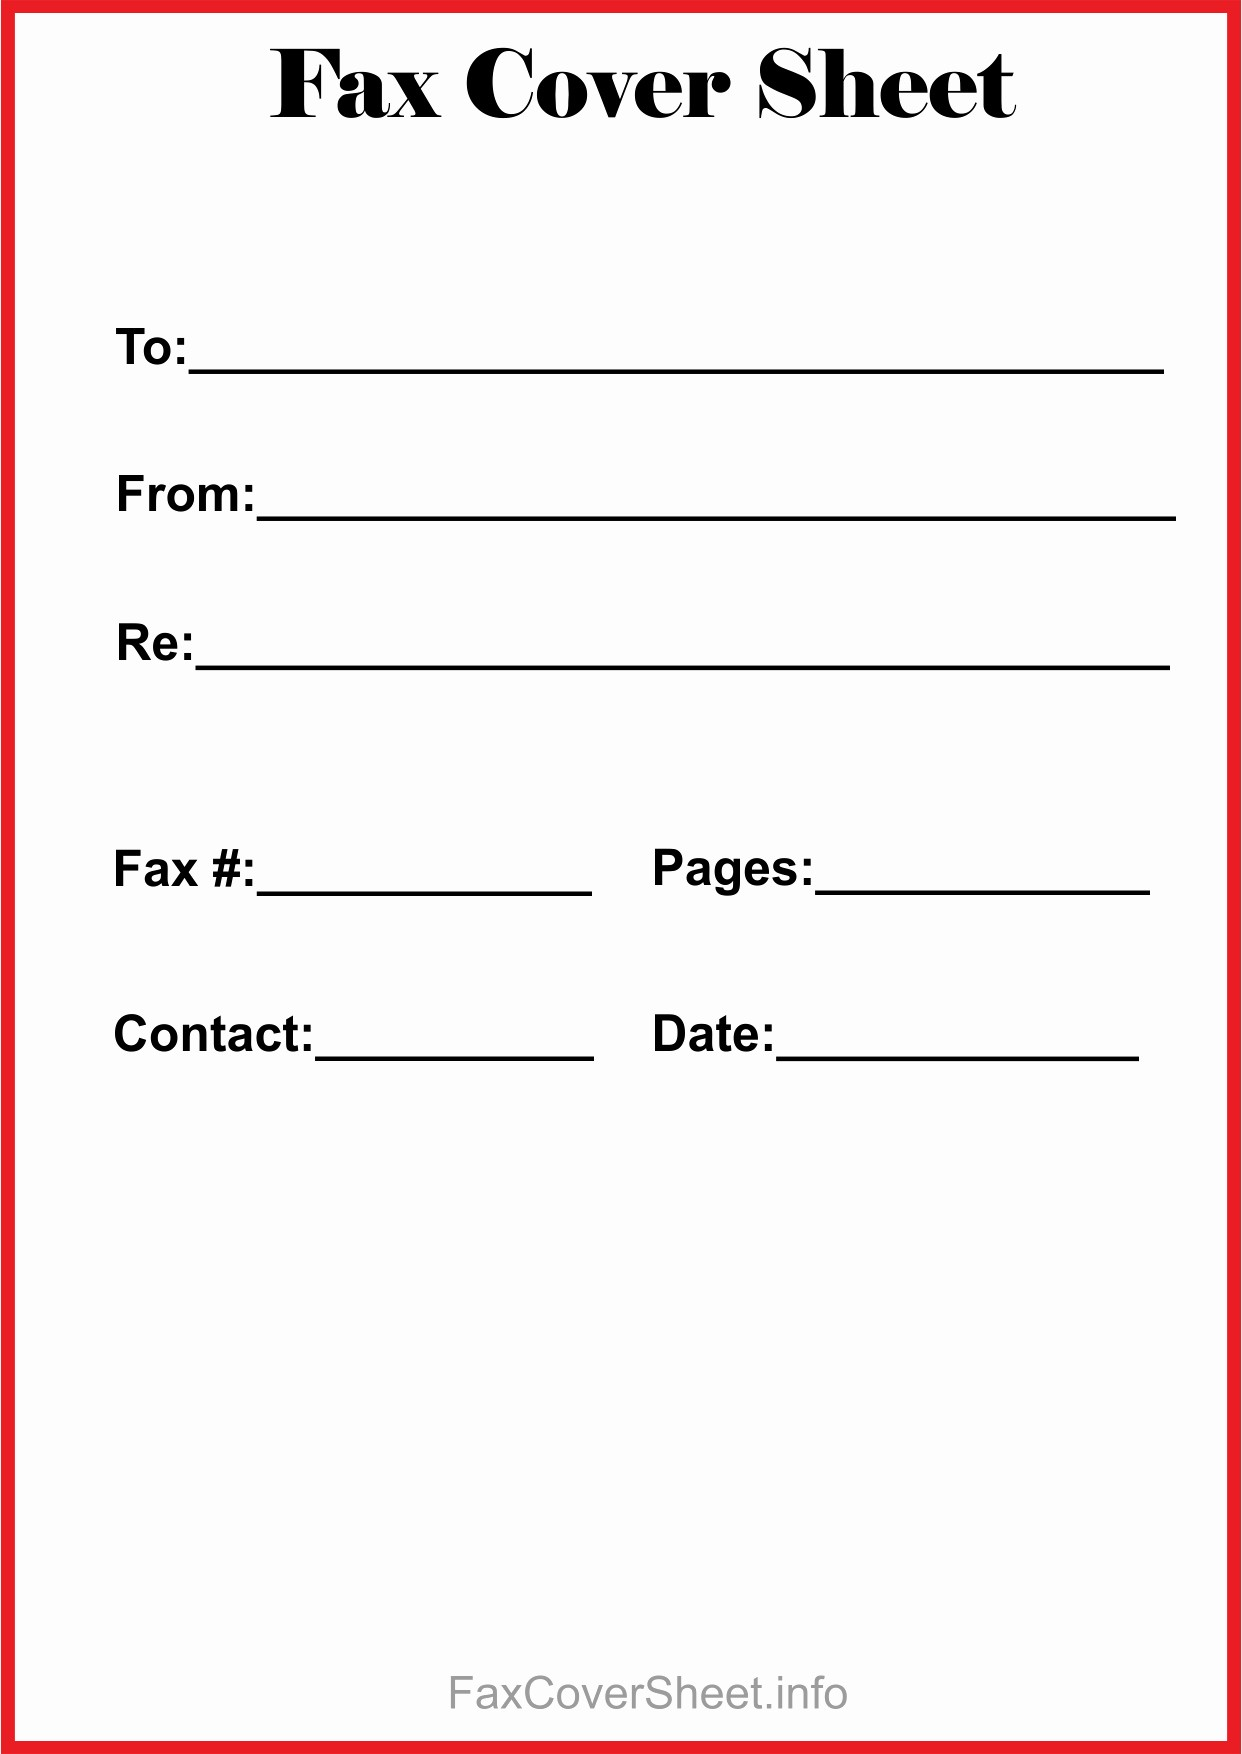 How to Fax Cover Sheet Beautiful Free Fax Cover Sheet Template Download